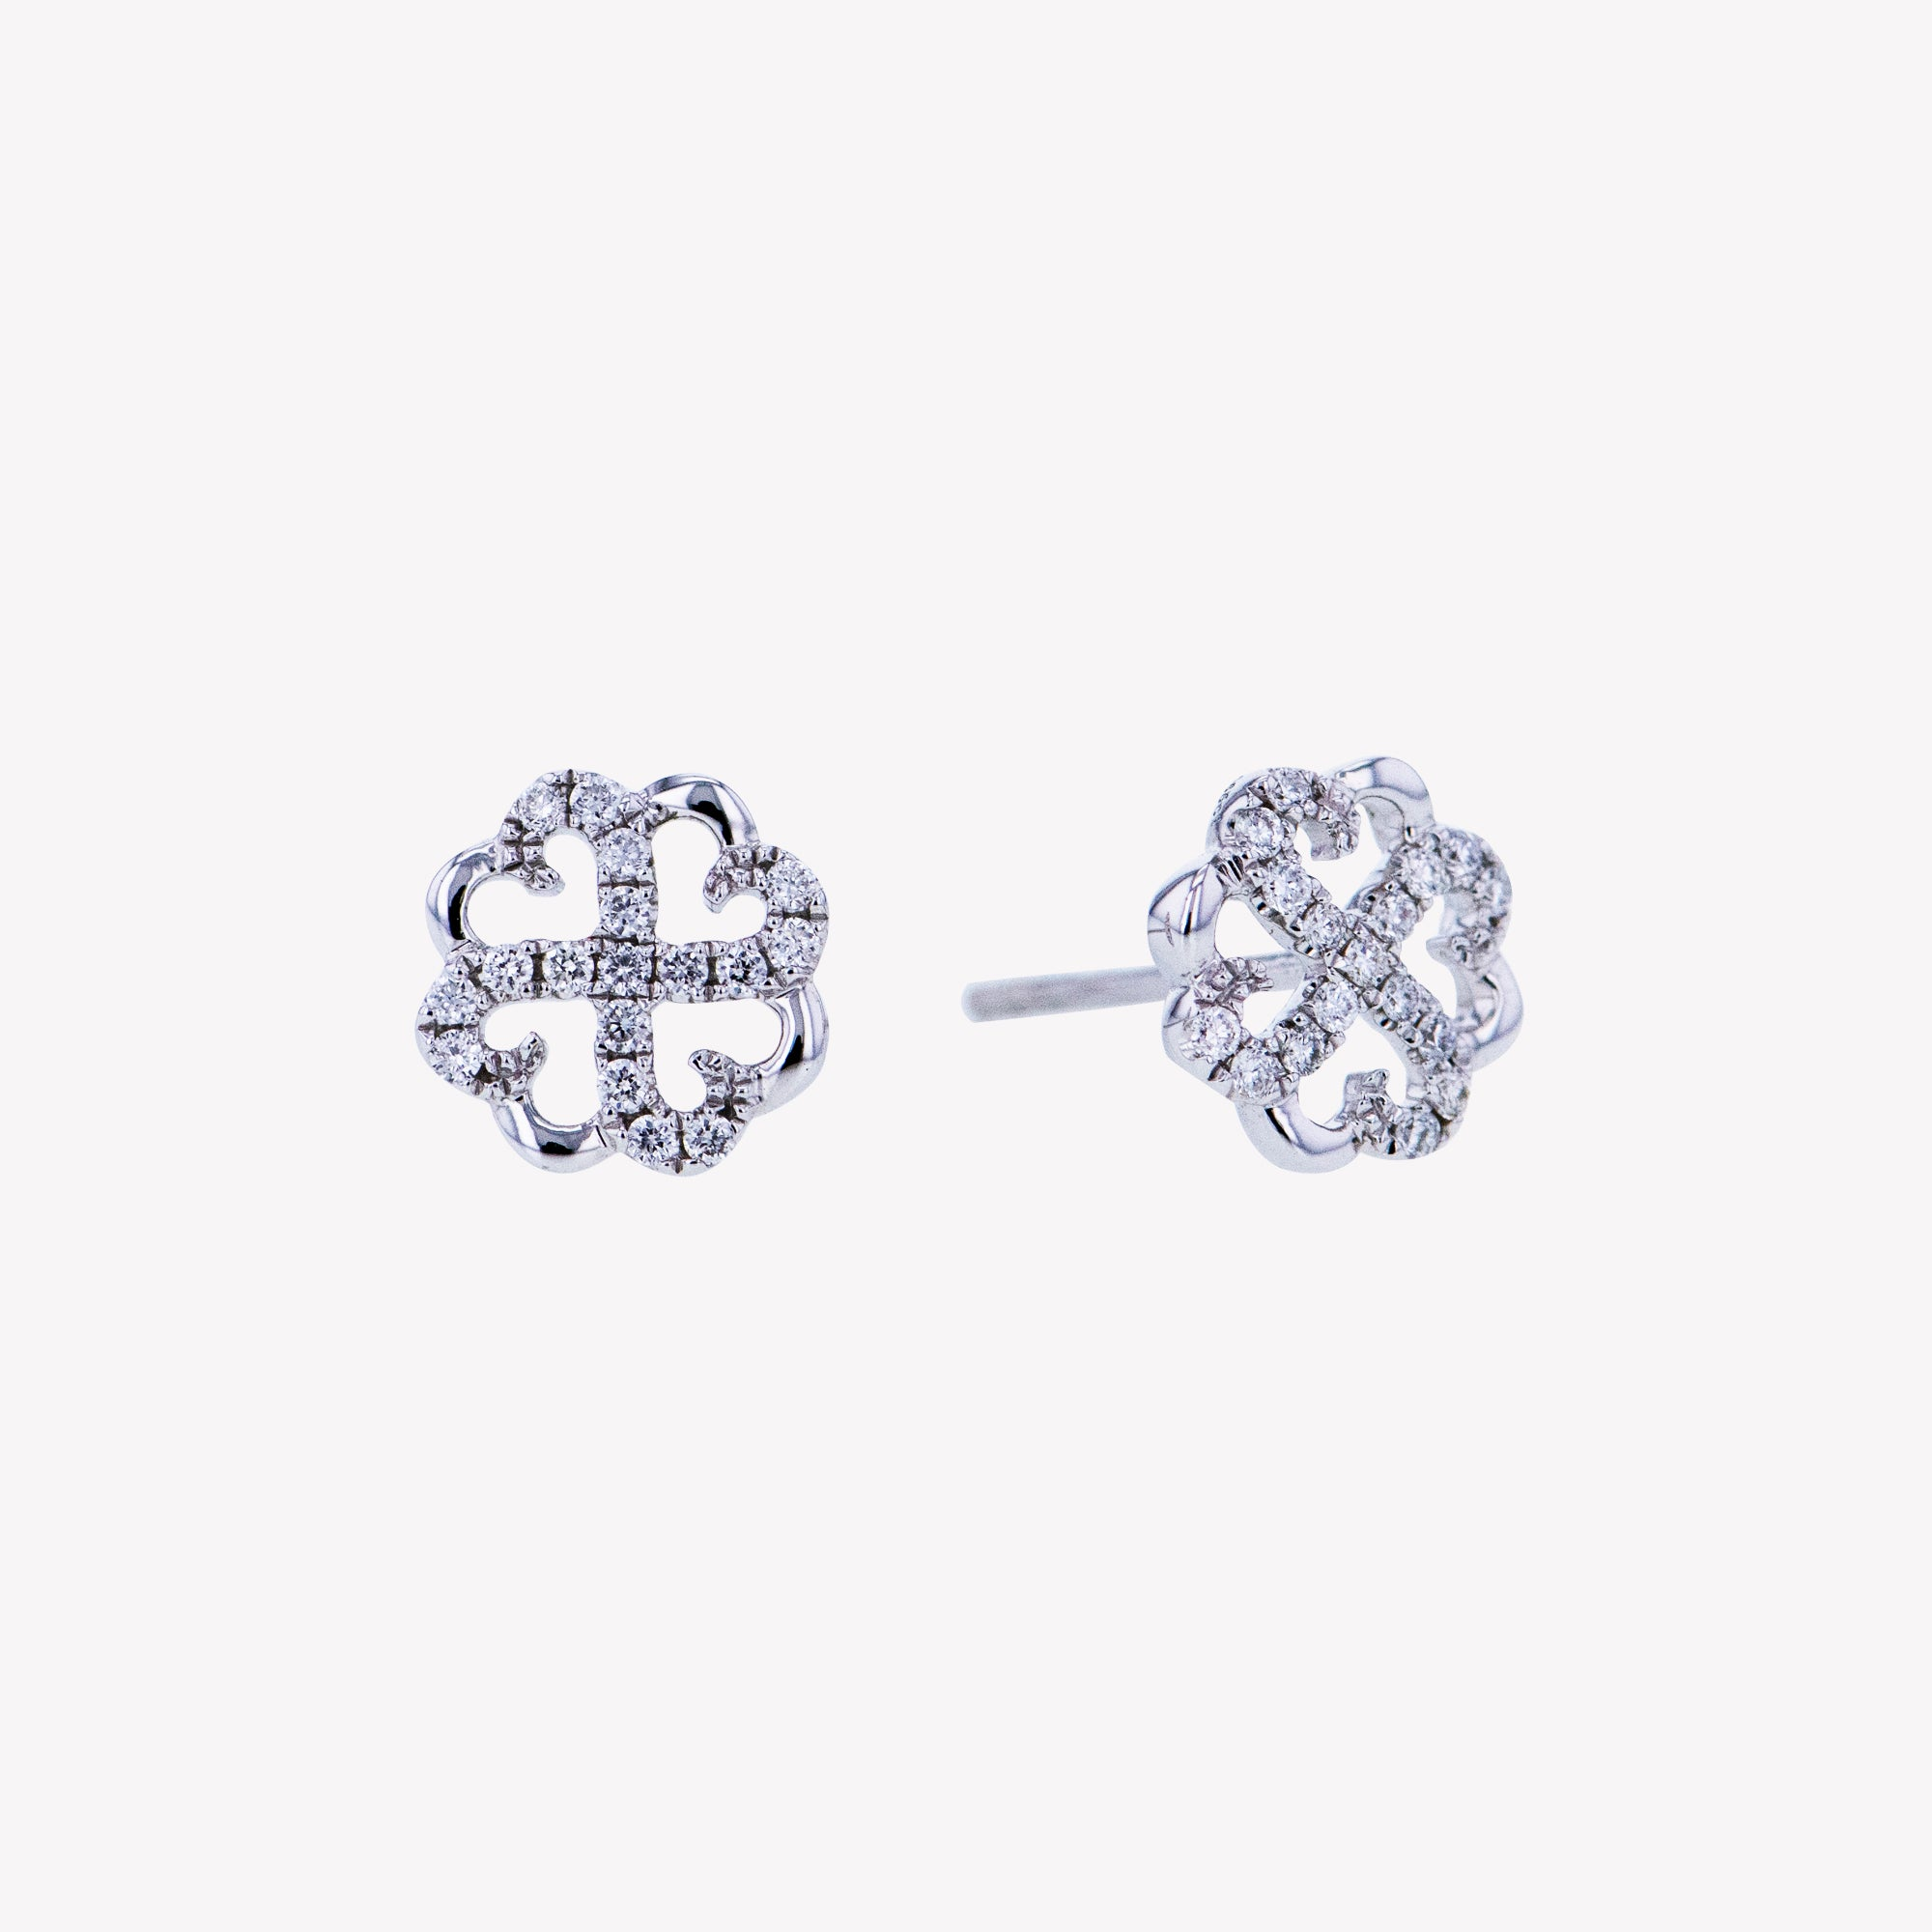 Clover Earrings in White Gold